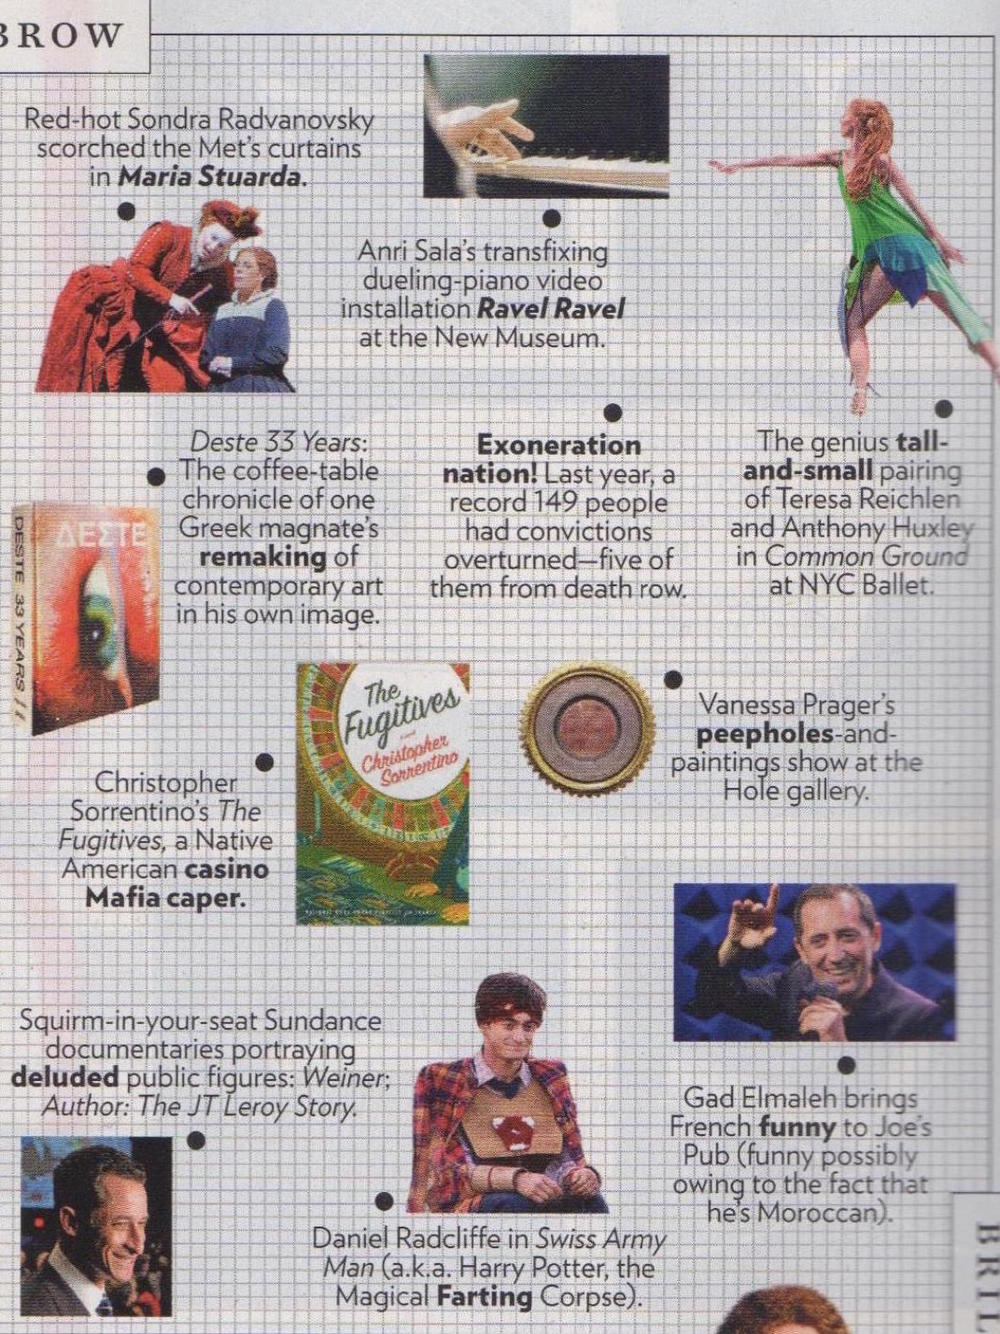 NY Magazine, The Approval Matrix   Feb 8-21 2016